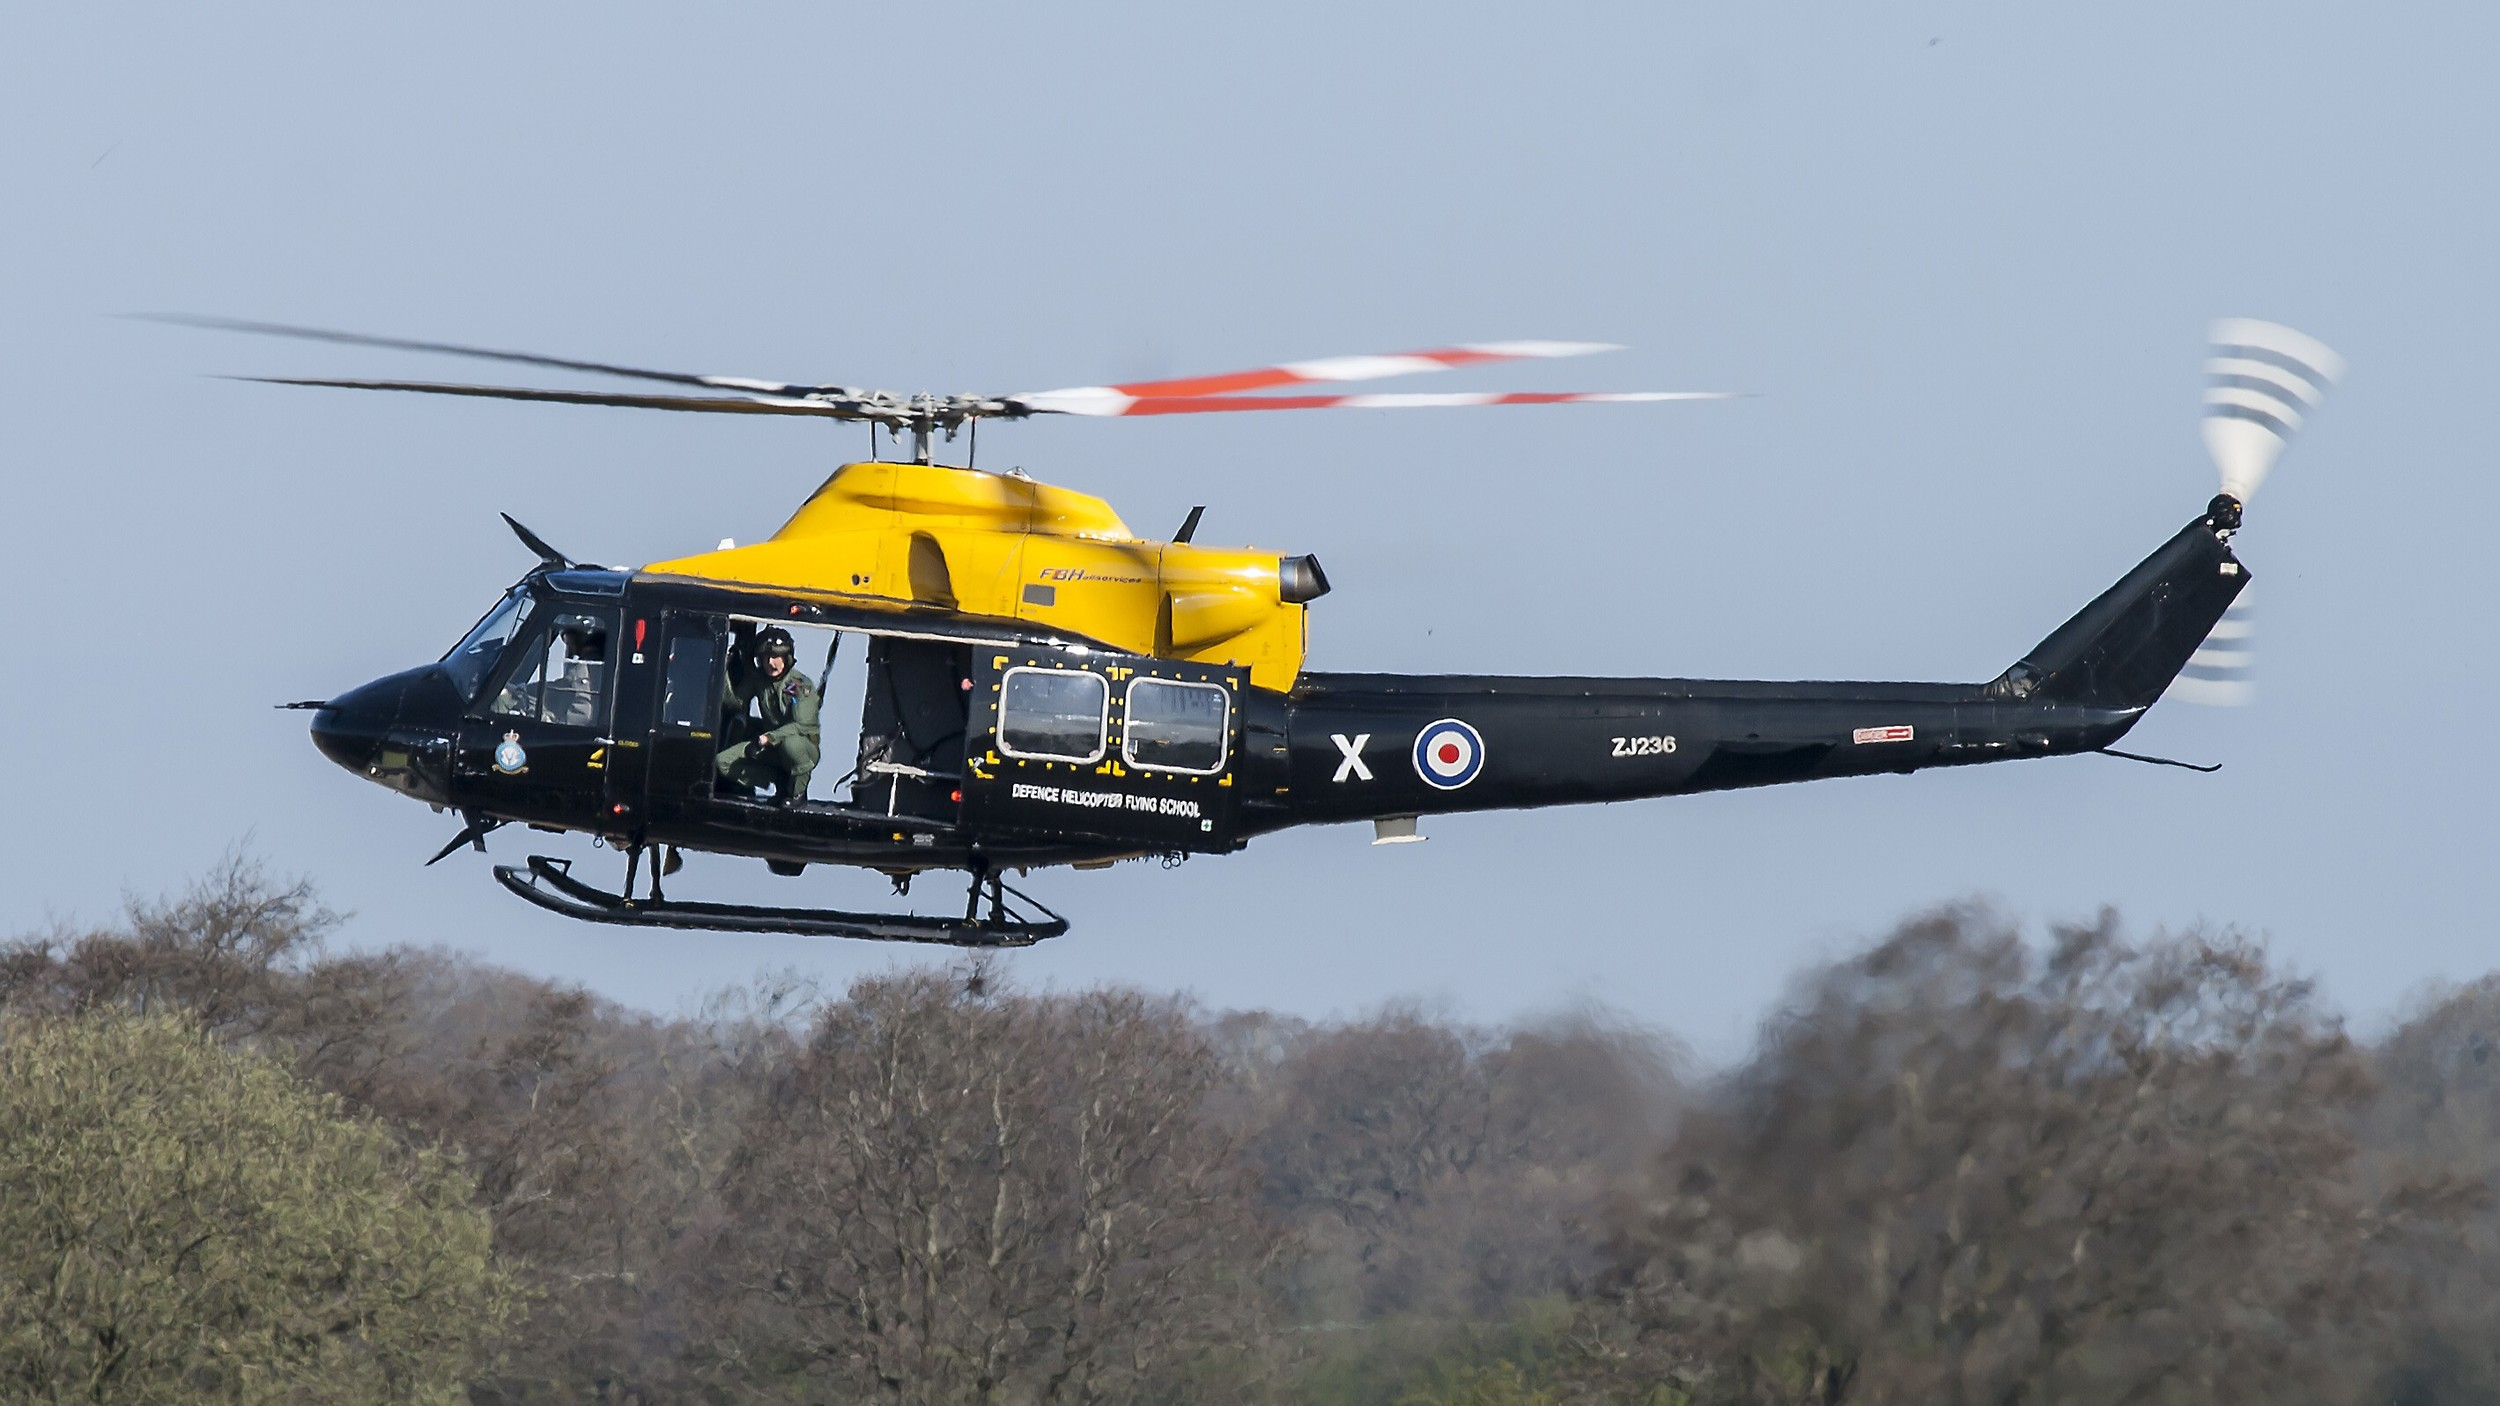 This image was taken at  1/250  and you can see some tail rotor movement.